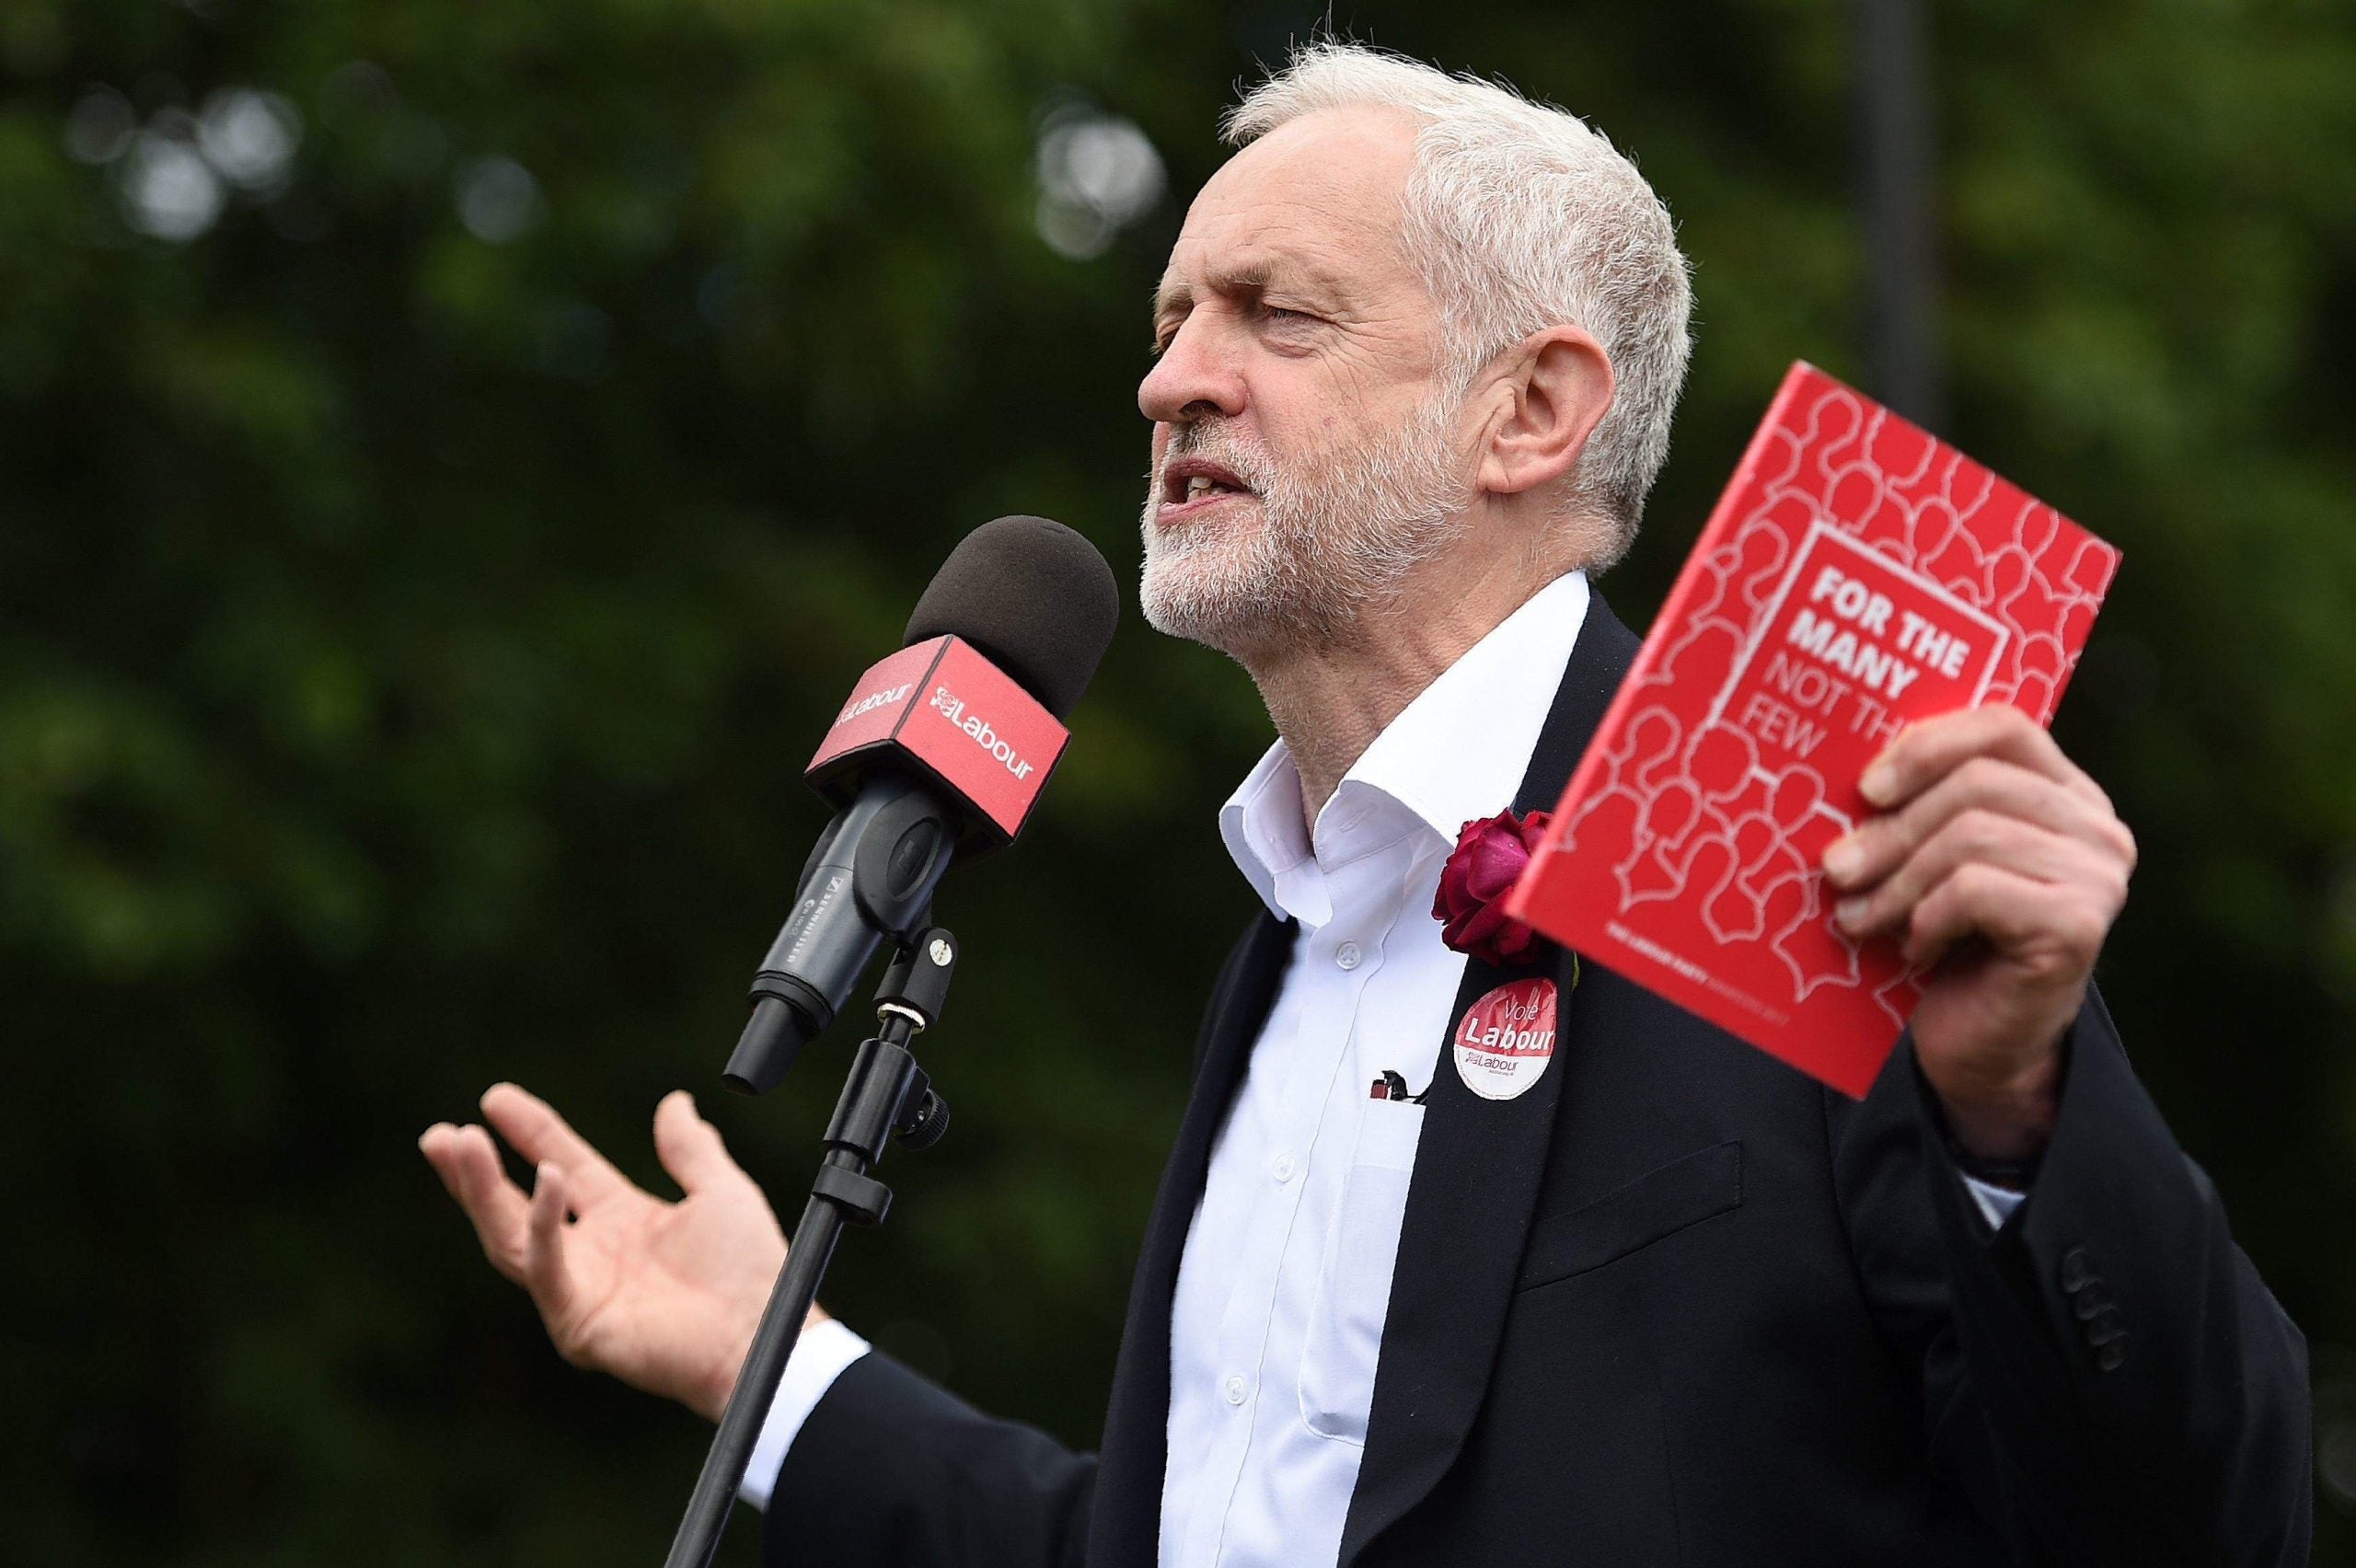 The election sealed the deal – Jeremy Corbyn's new socialism won the argument